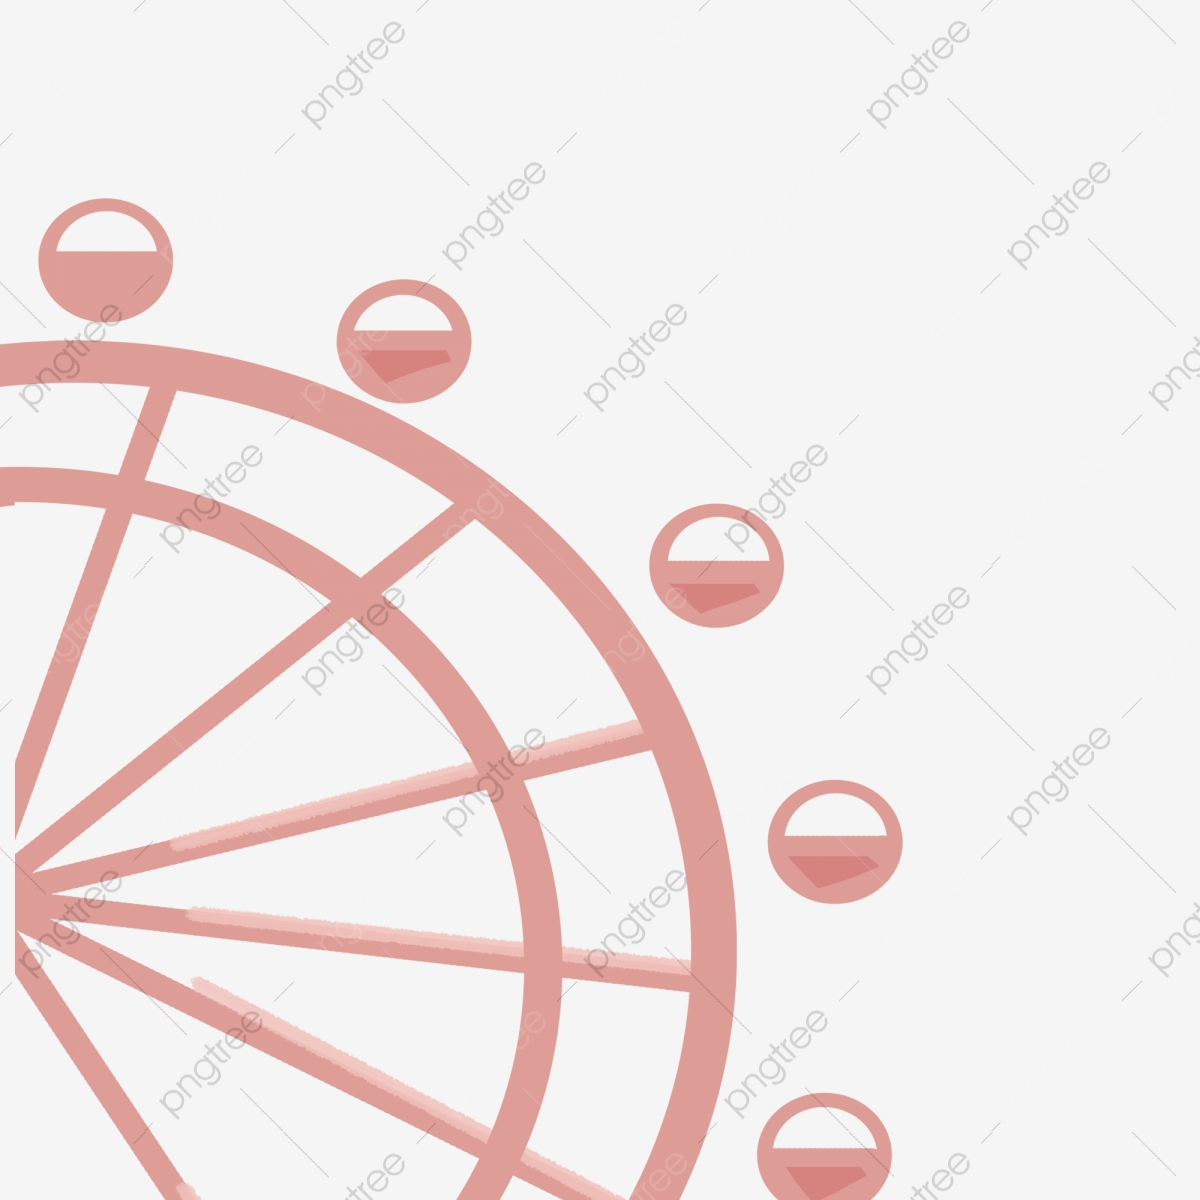 Cartoon Ferris Wheel Download Cartoon Ferris Wheel Flat Ferris Wheel Travel Icon Png Transparent Clipart Image And Psd File For Free Download